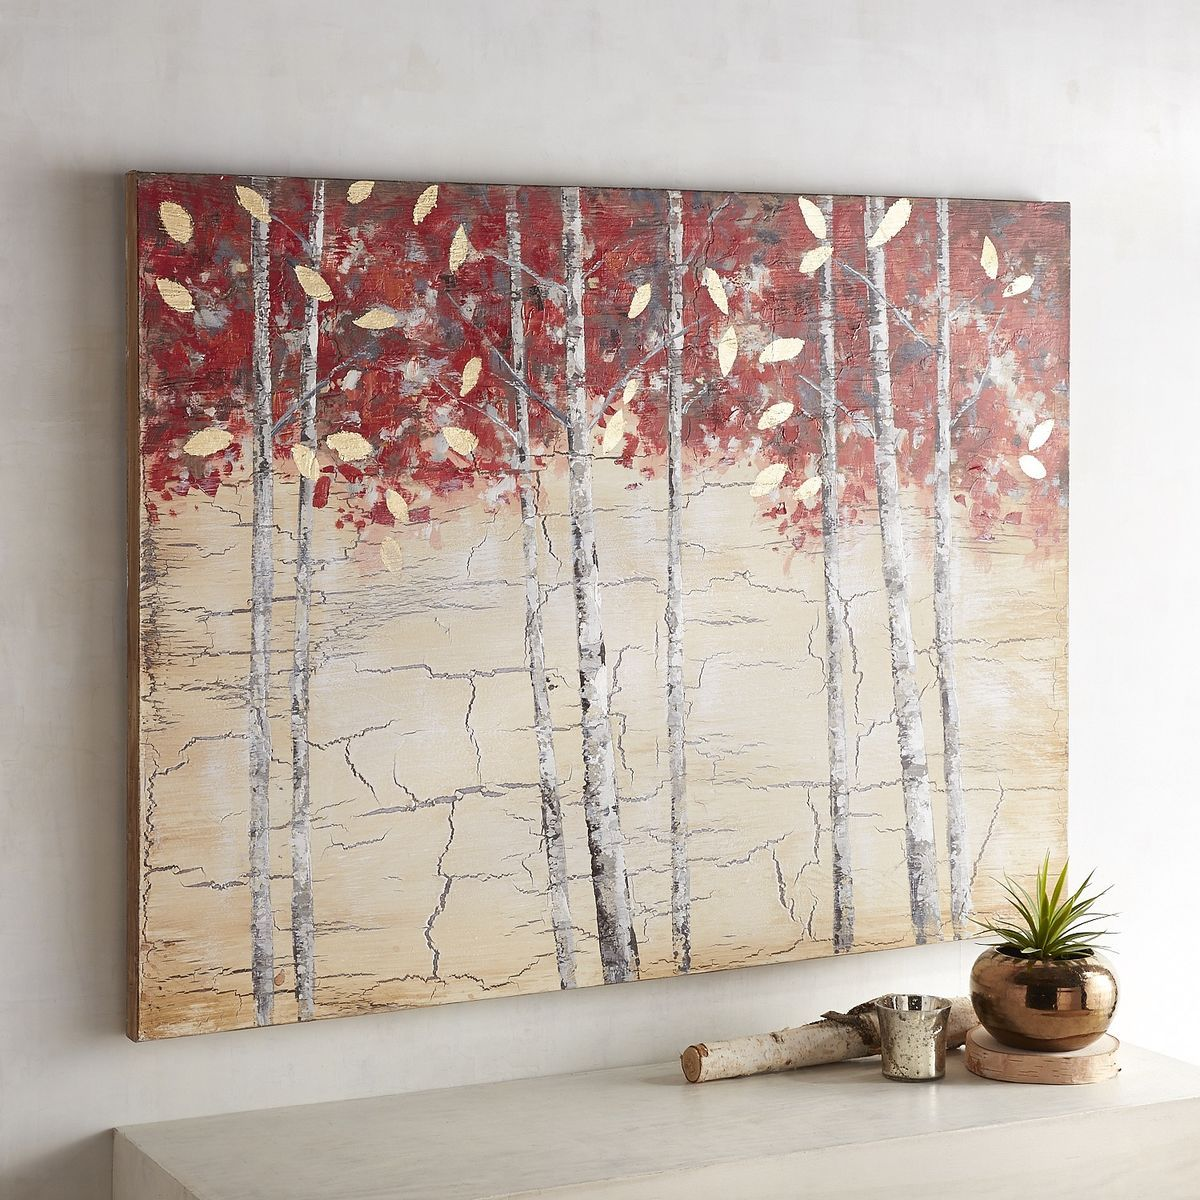 Tall Red Birch Tree Art Pier 1 Imports Tree Wall Painting Wall Art Canvas Painting Birch Tree Art